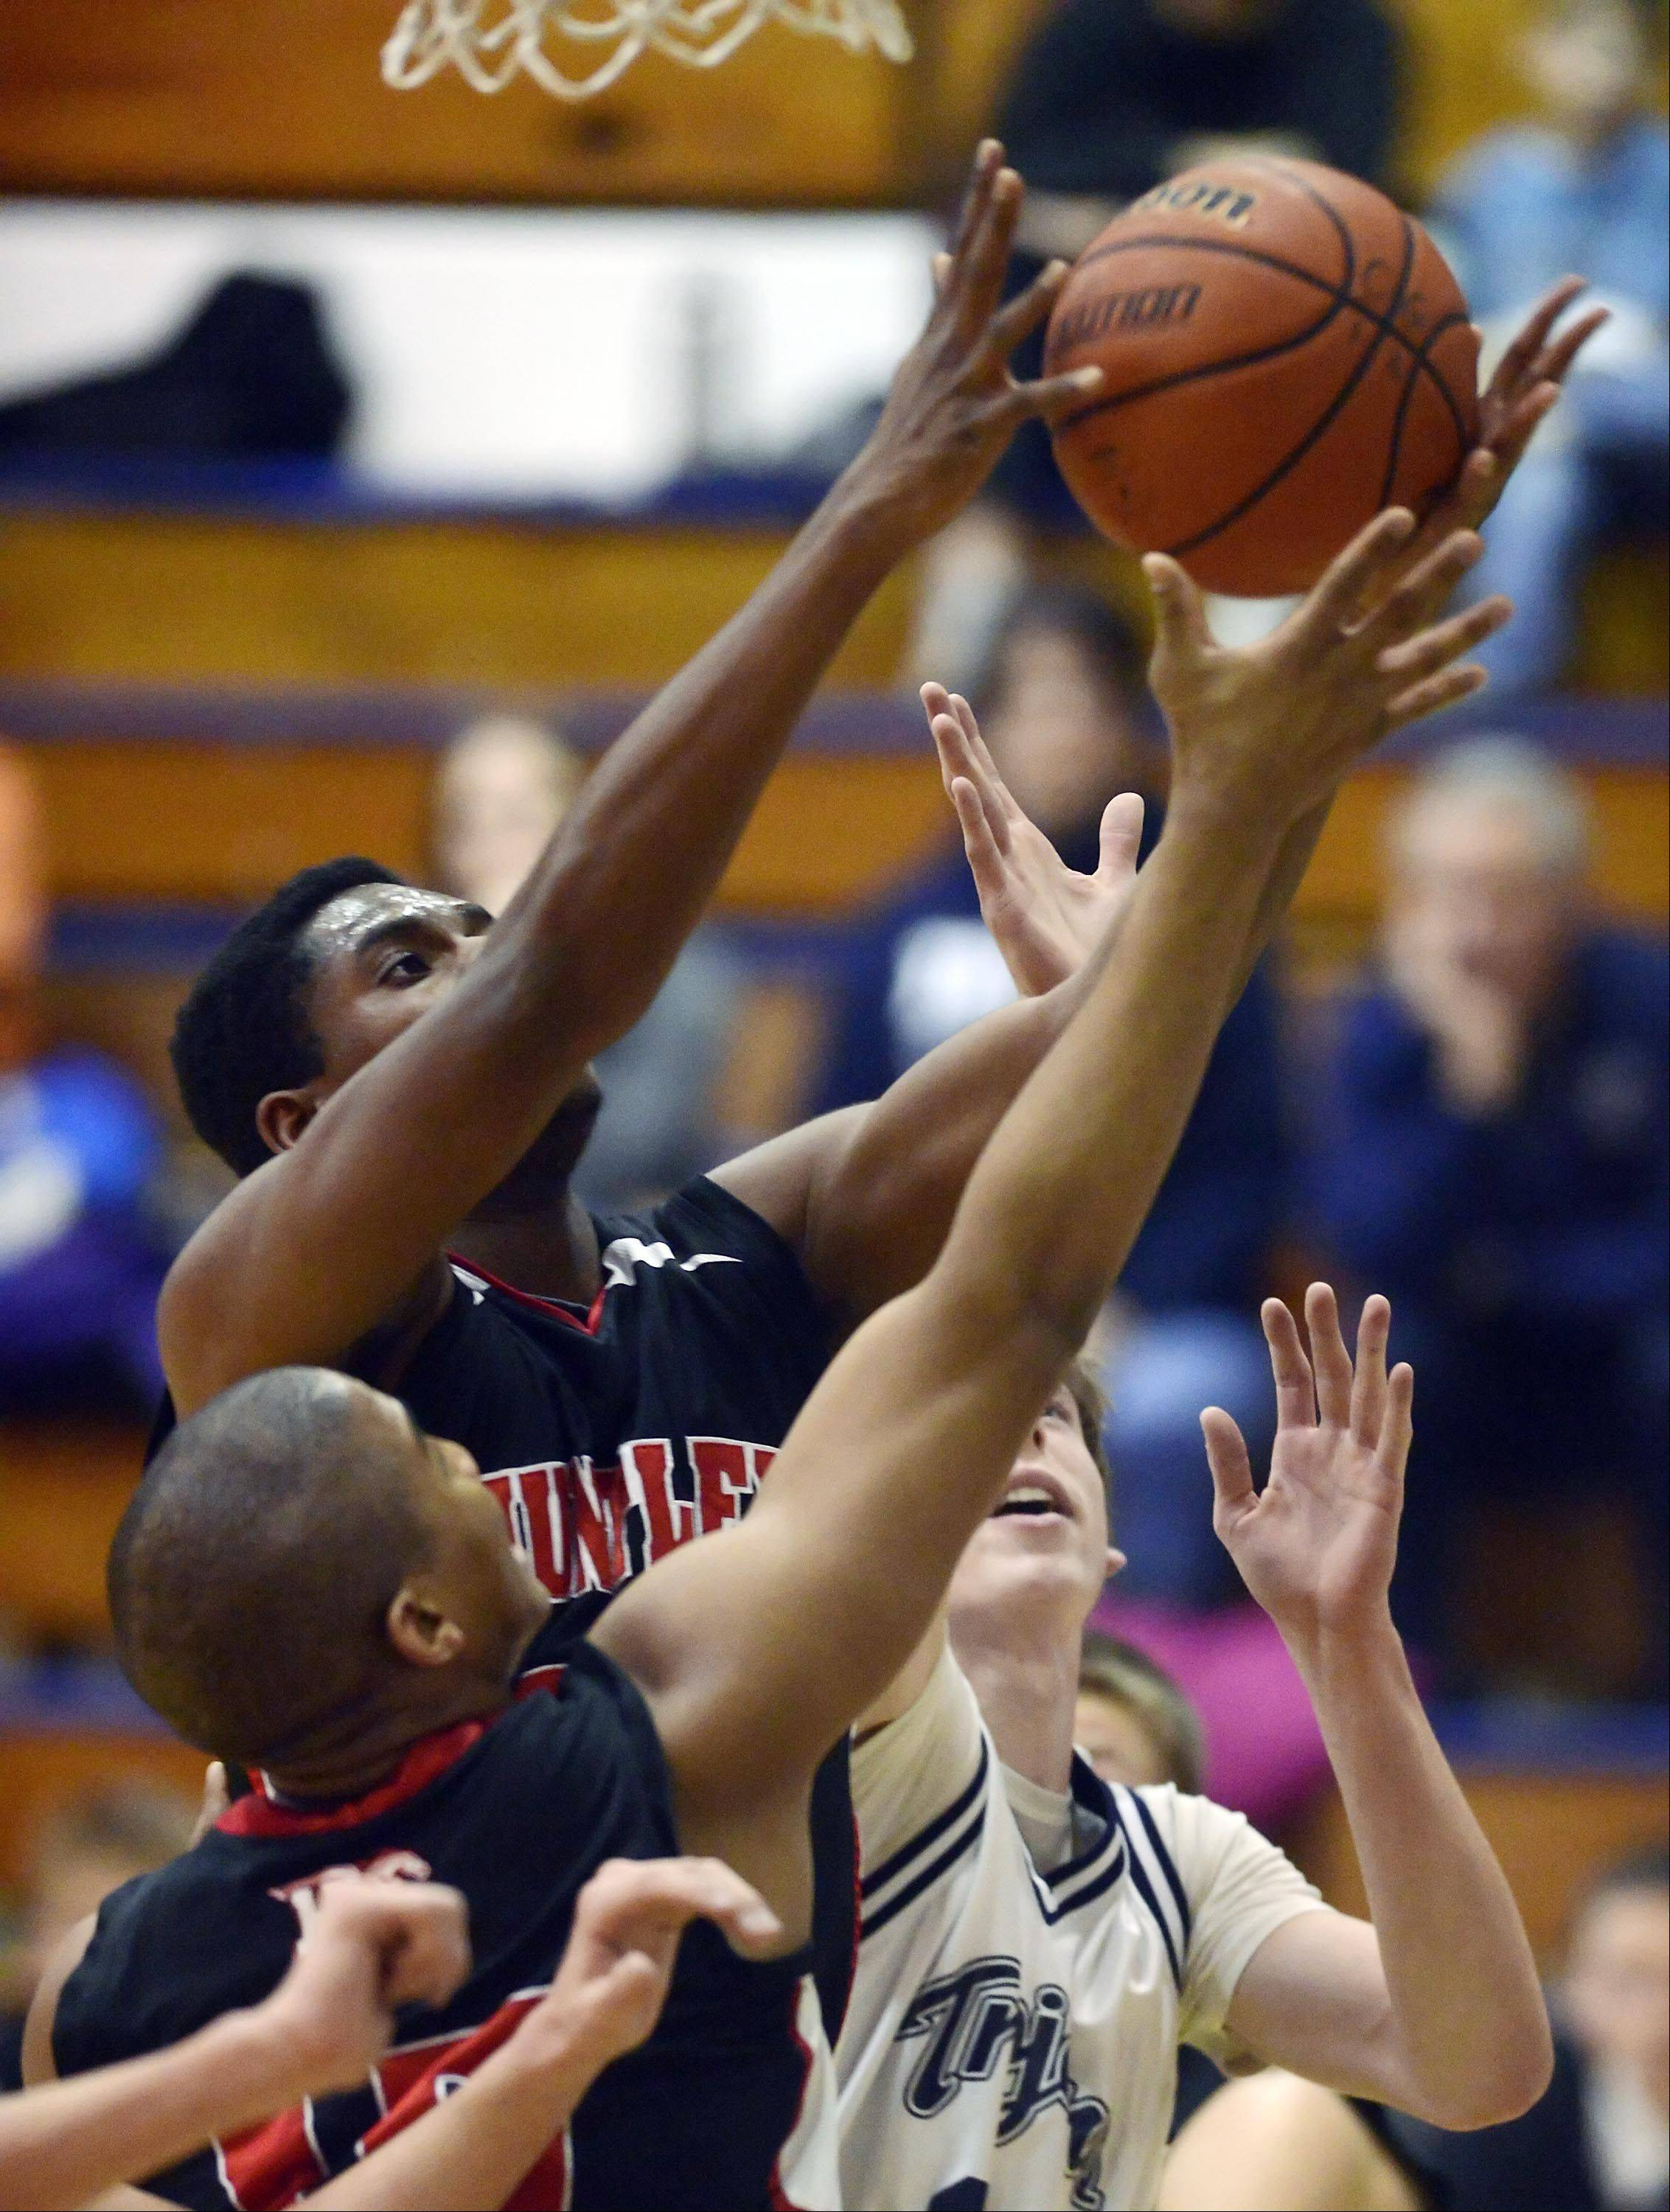 Huntley's Amanze Egekeze takes a rebound against teammate Bryce Only and Cary-Grove's Dean Lee Tuesday in Cary.